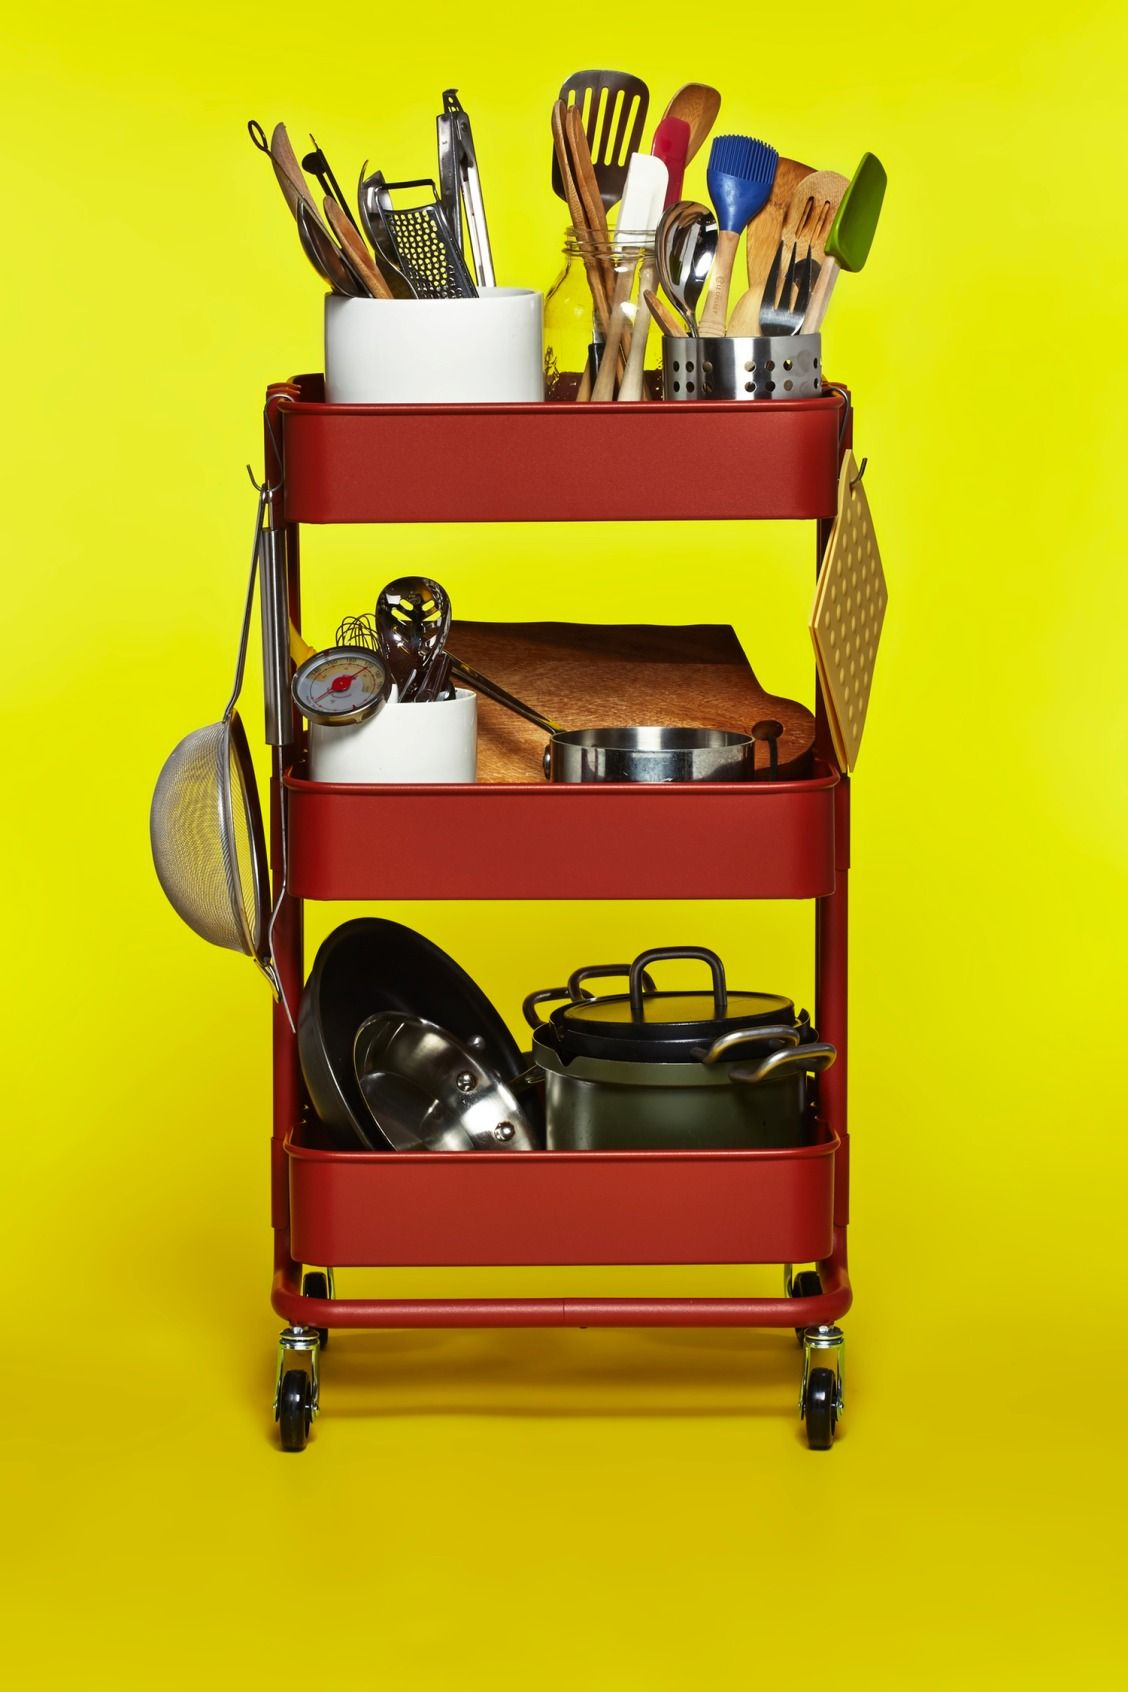 The Ikea Raskog Cart As Mobile Kitchen Tool Box Ikea Raskog Ikea Raskog Cart Rental Kitchen